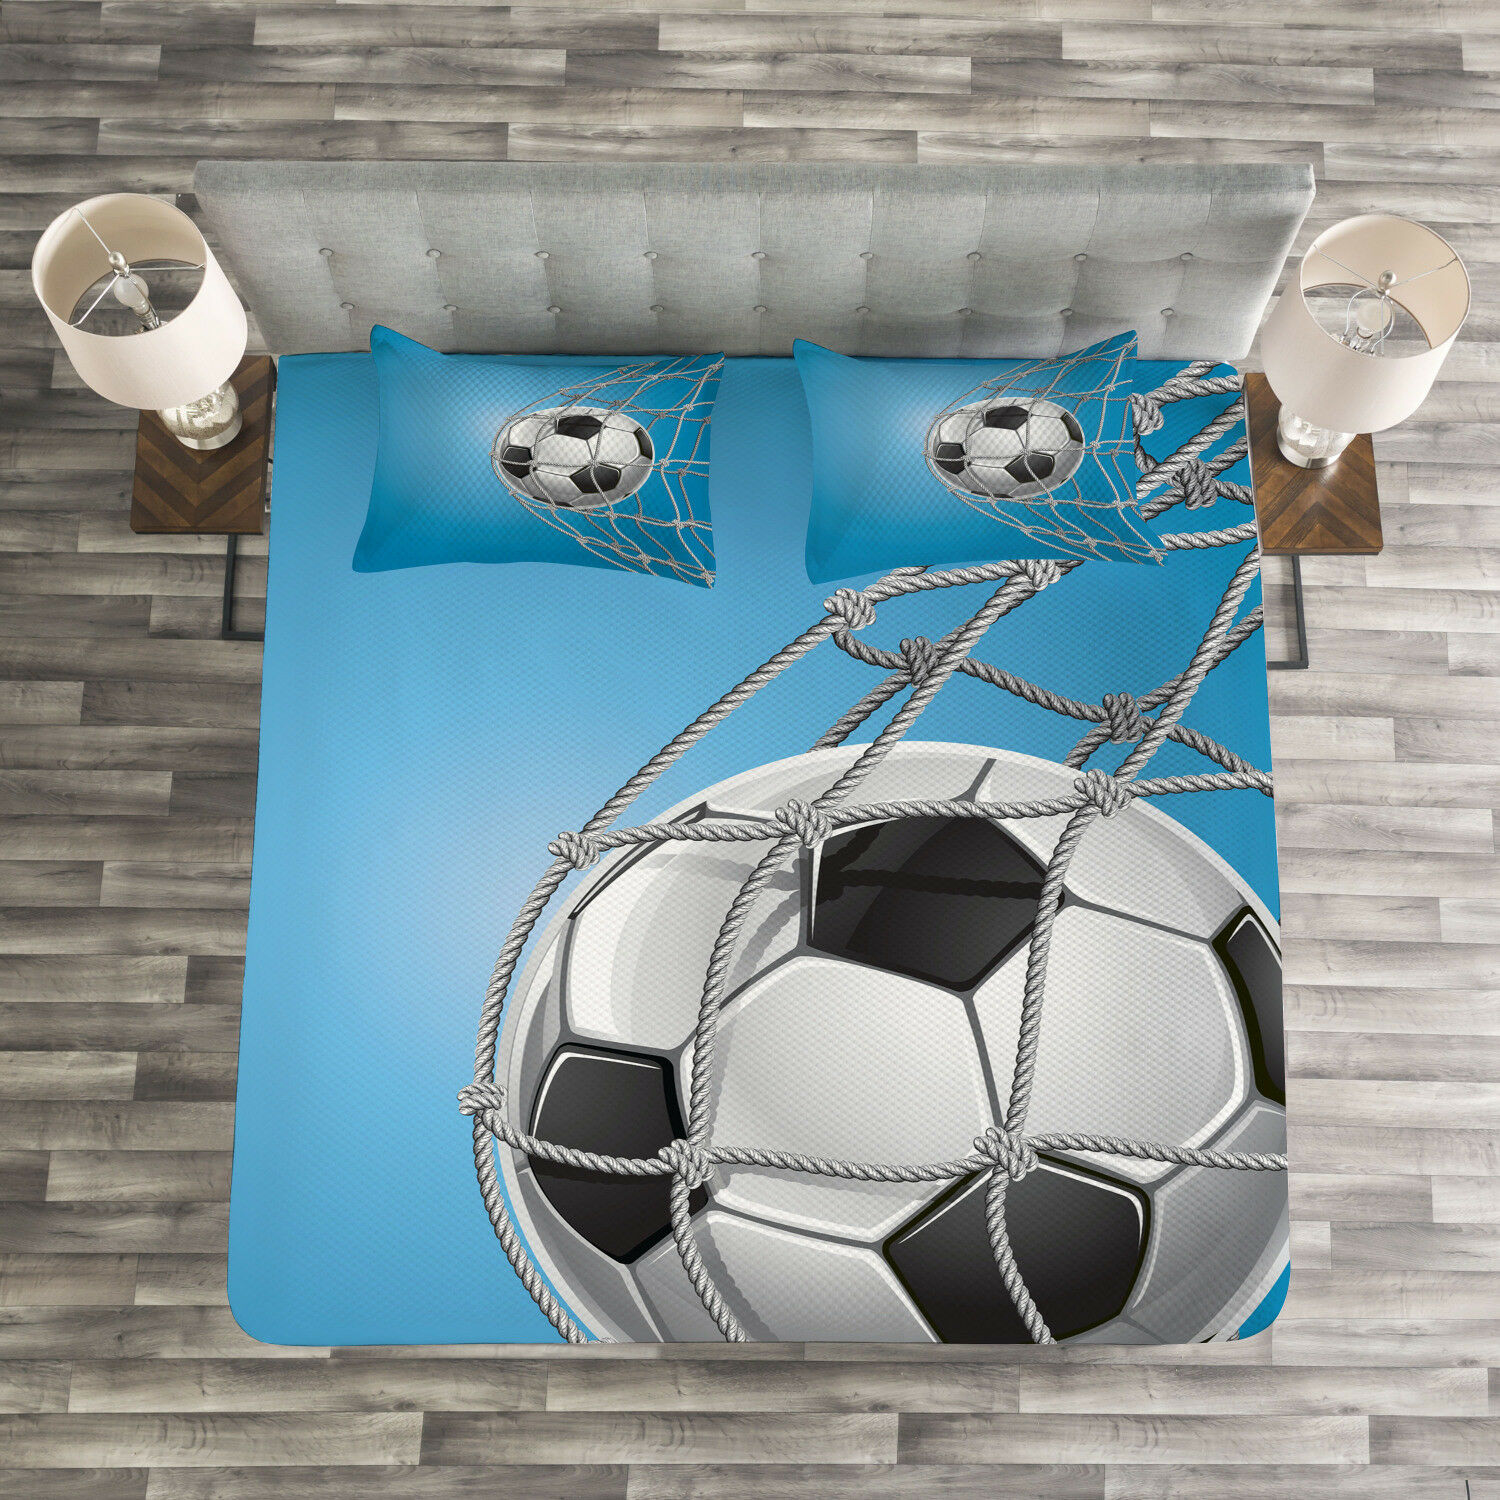 Soccer Quilted Bedspread & Pillow Shams Set, Goal Ball in the Net Print